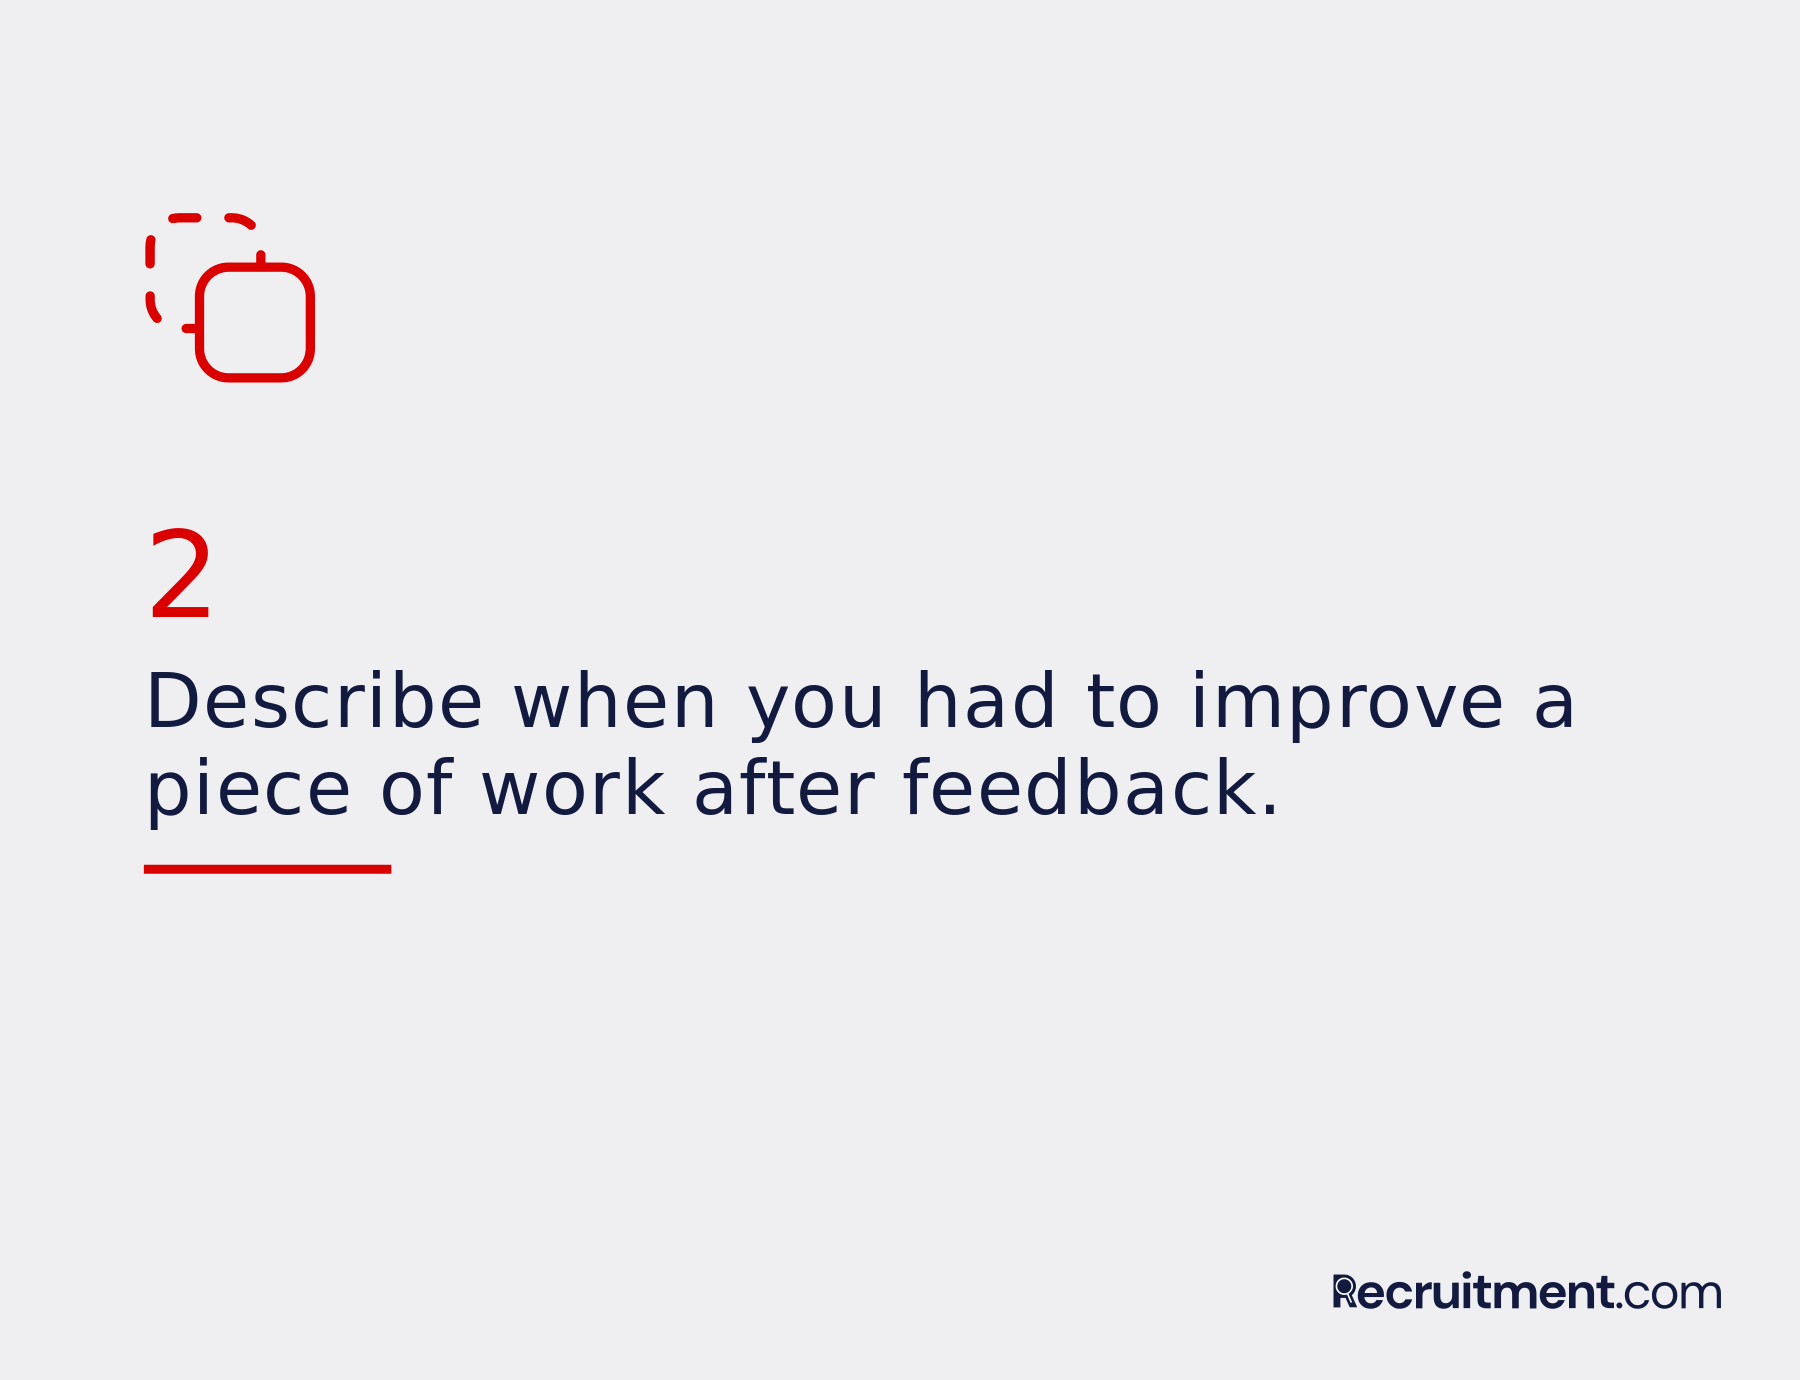 Common interview question 2: Improve after feedback